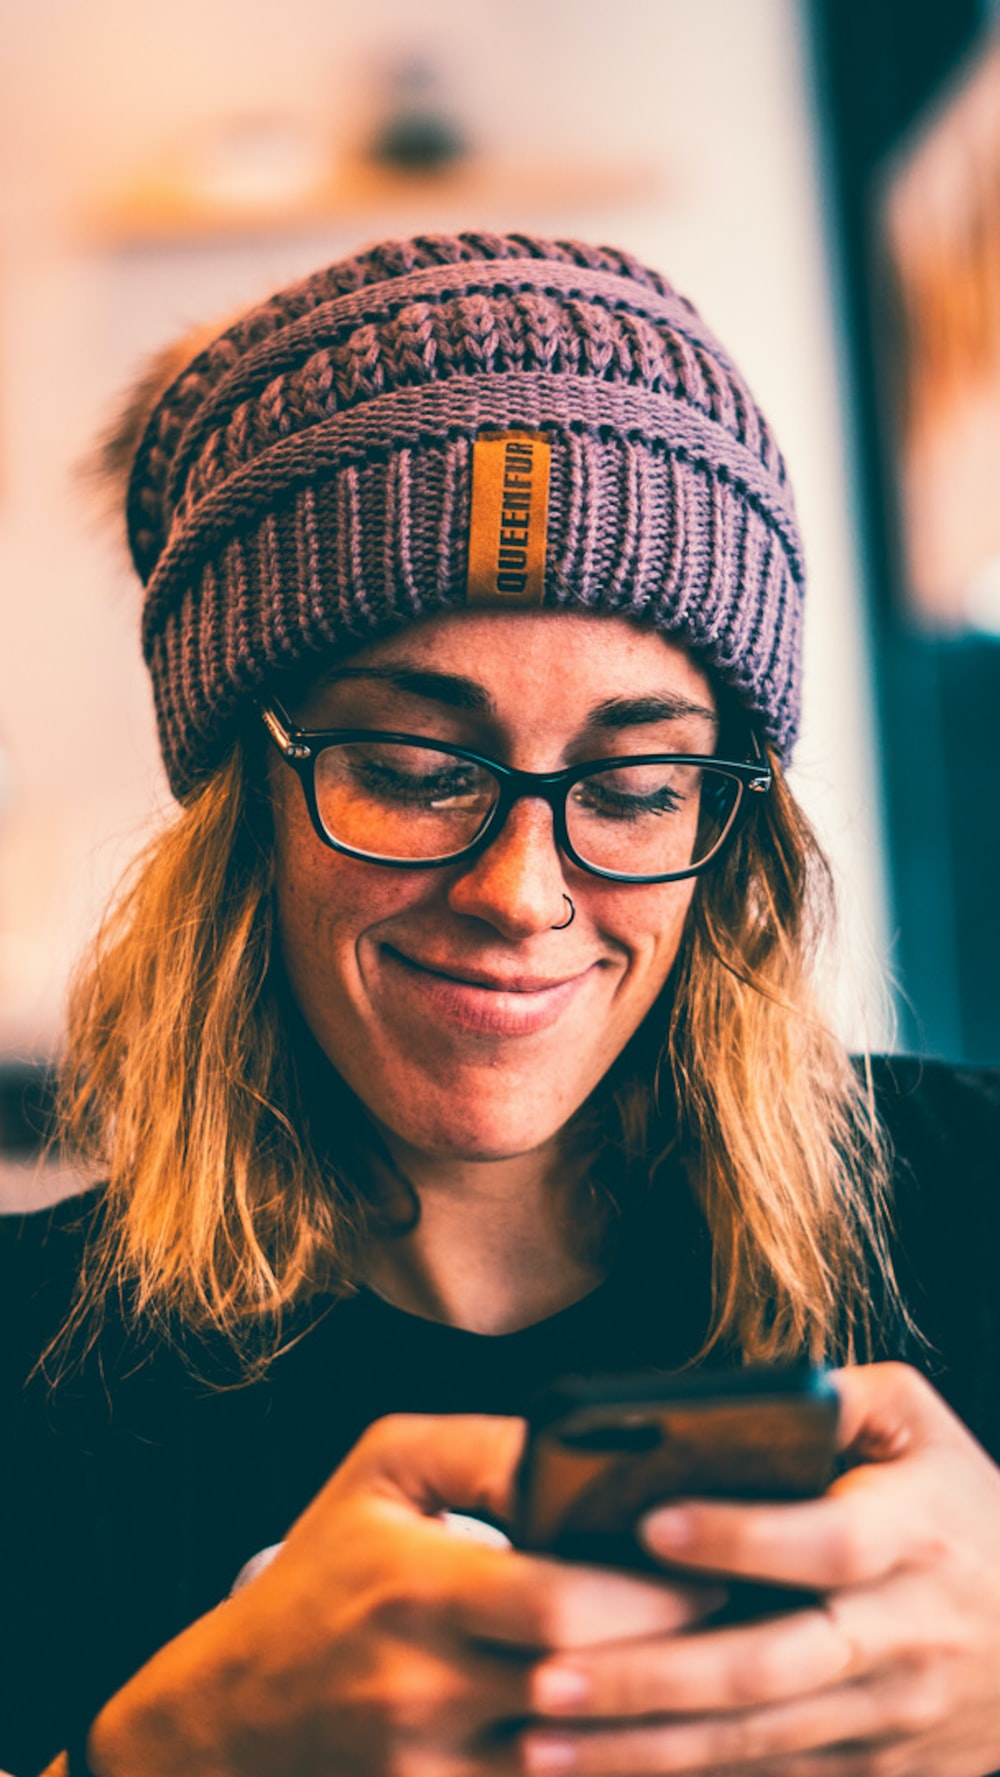 woman wearing black framed eyeglasses and grey knit beanie while using smartphone